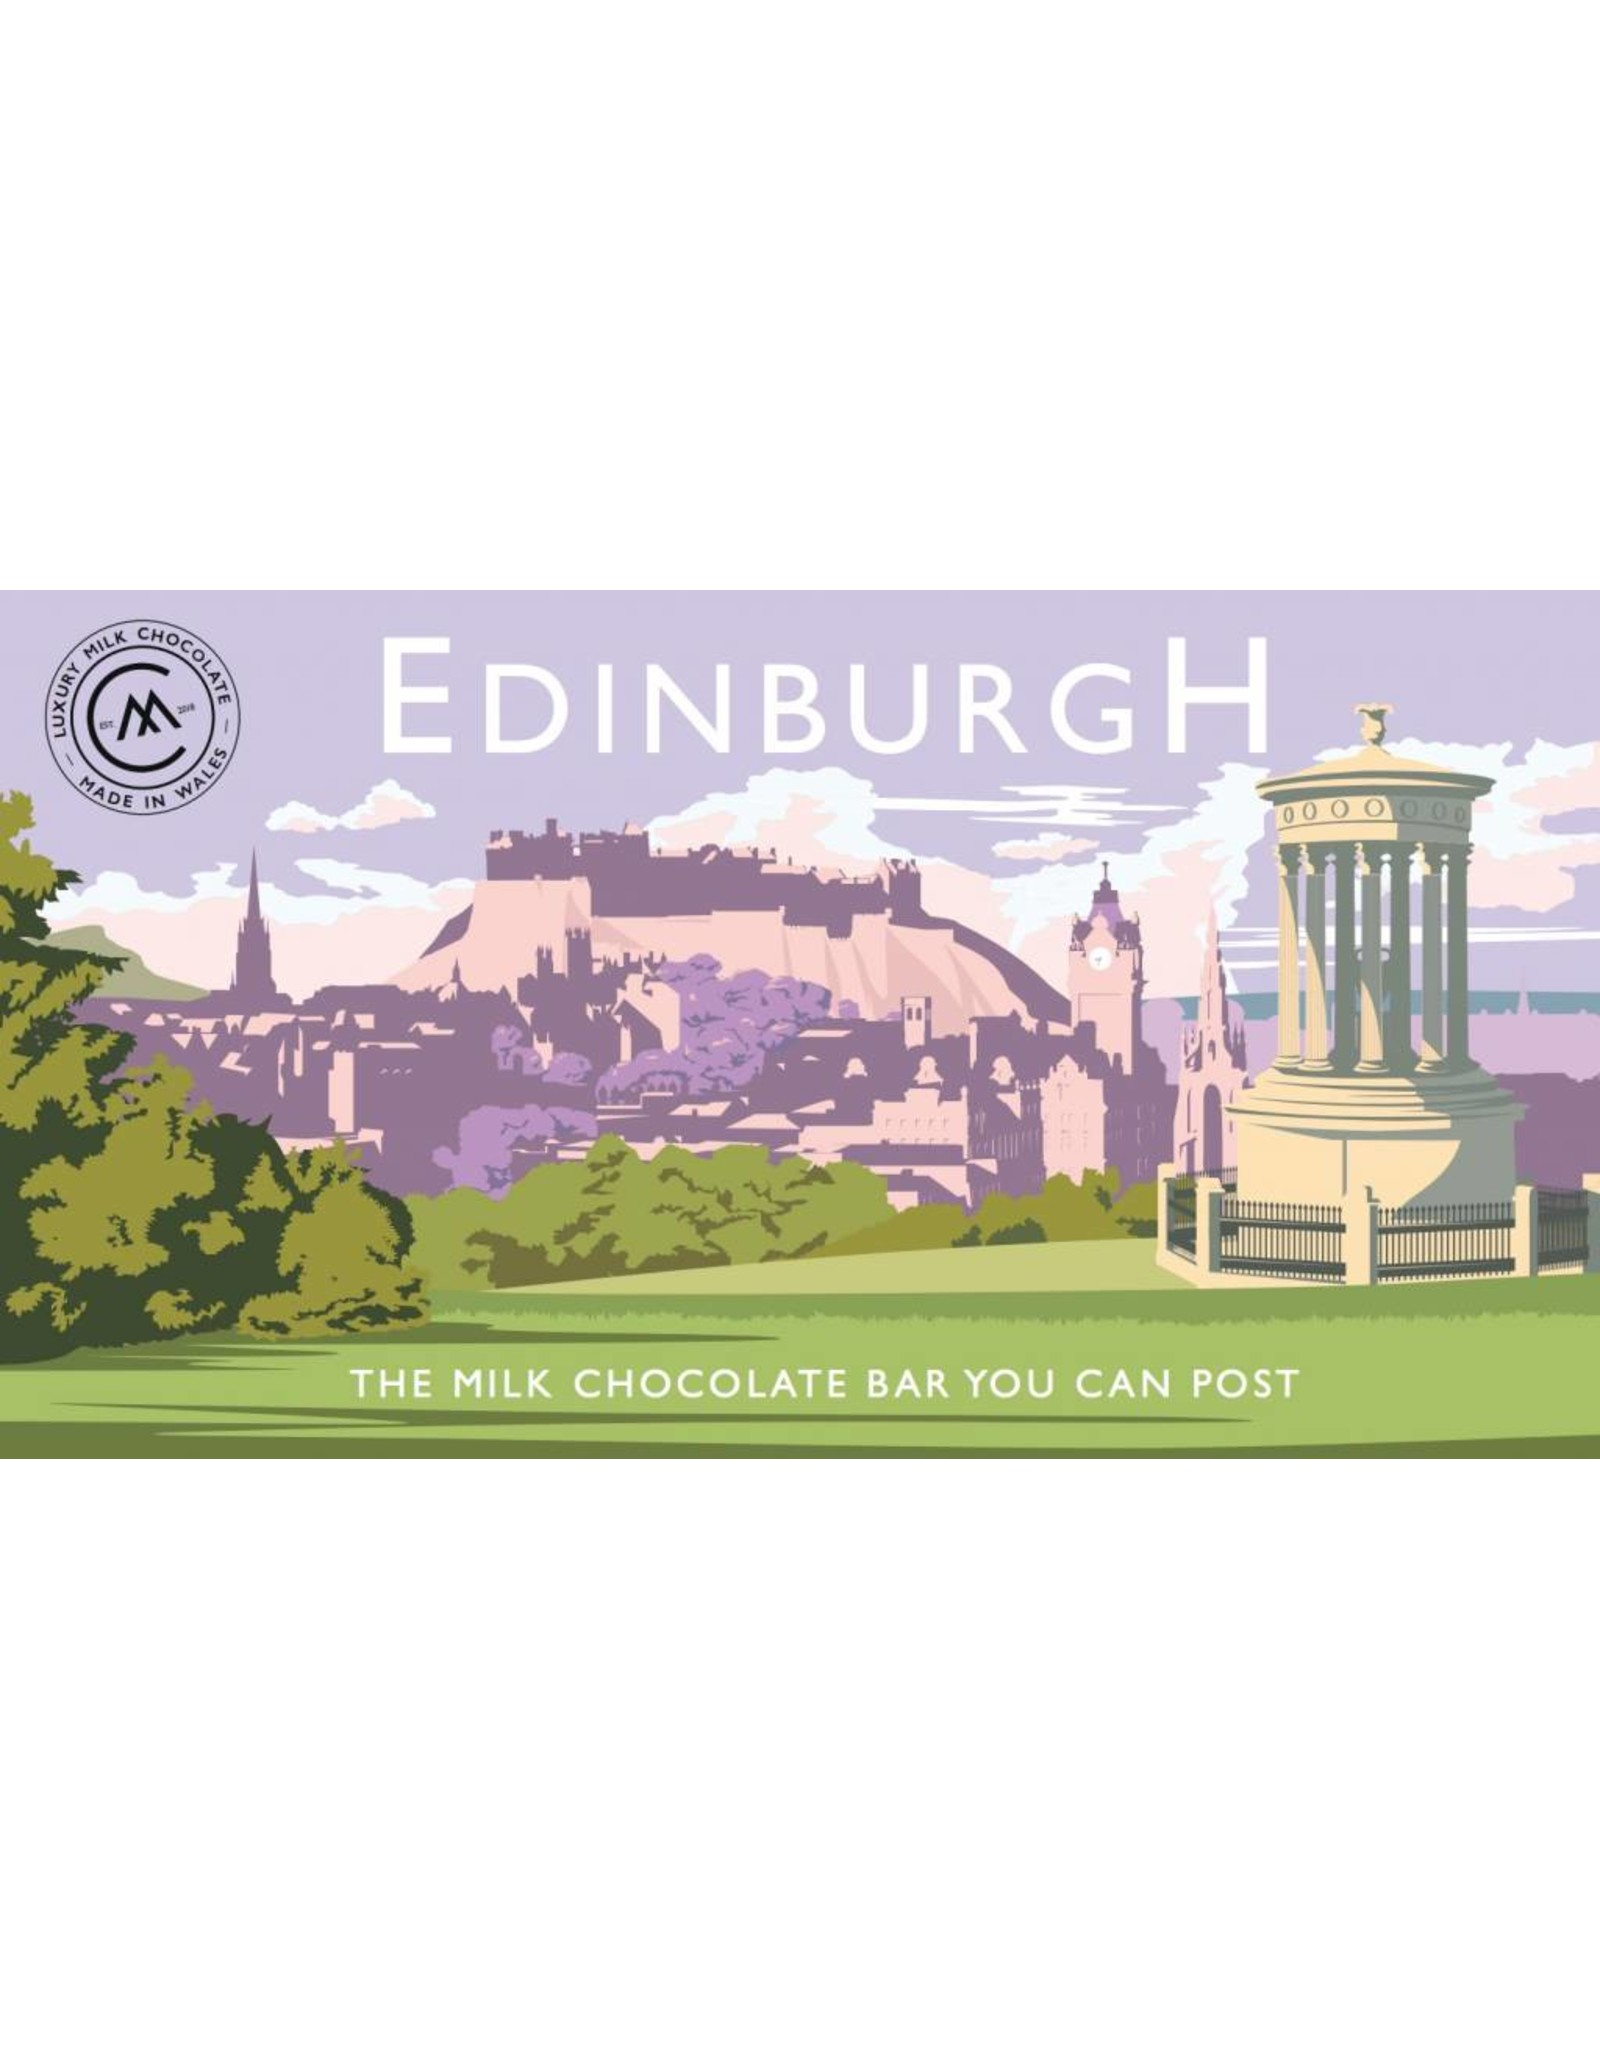 The Chocolate Bar You Can Post -Edinburgh